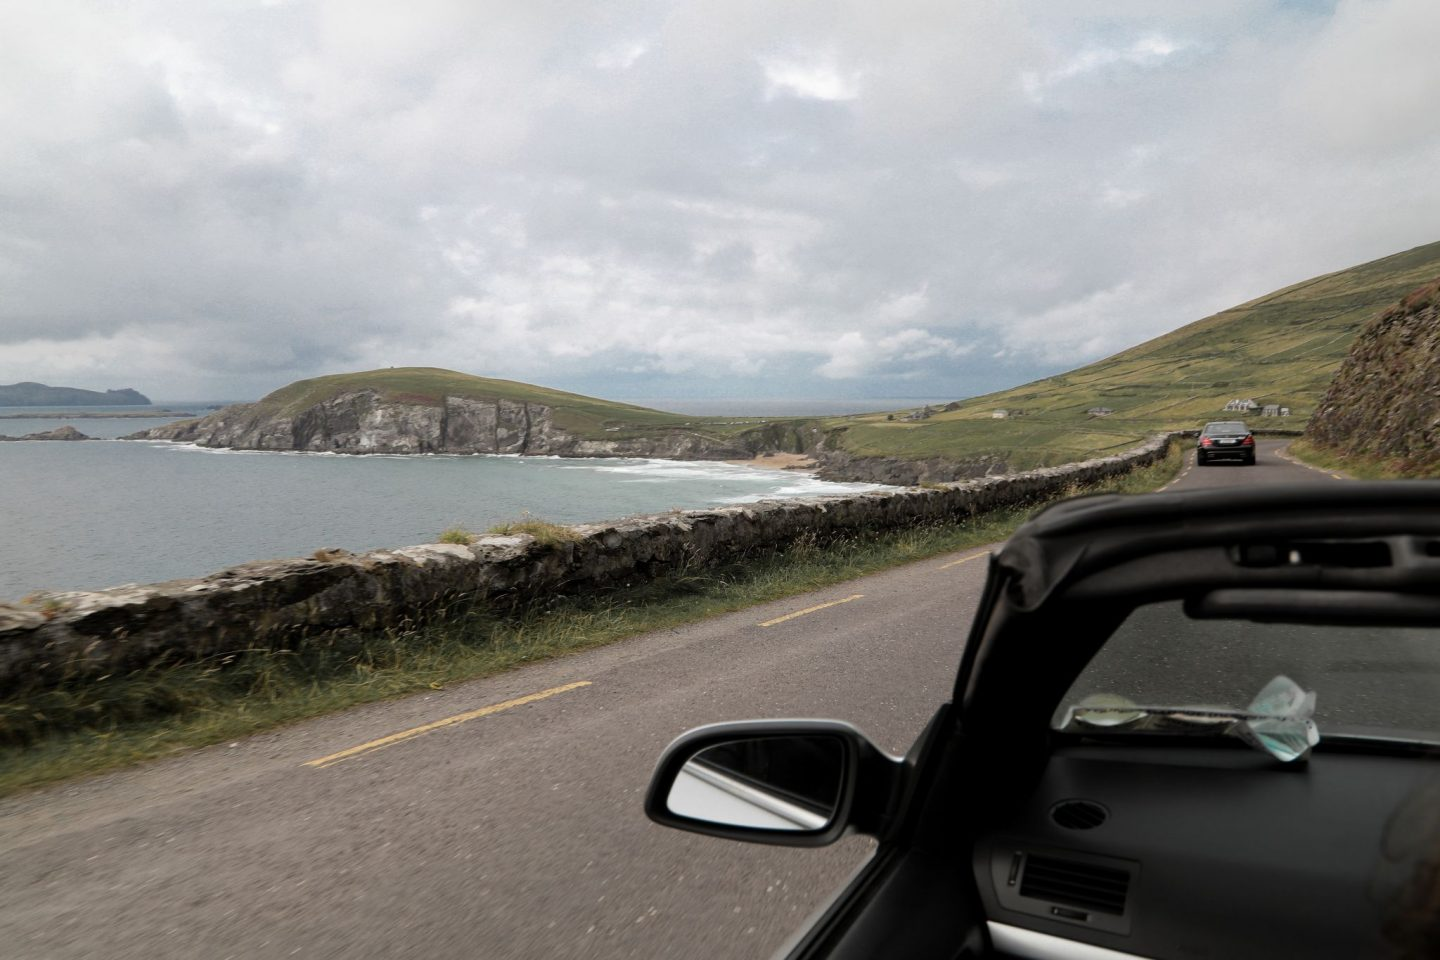 Primark ad - A weekend in Dingle, Co. Kerry, Ireland. Wild Atlantic Way. Penneys, Dingle Mingle